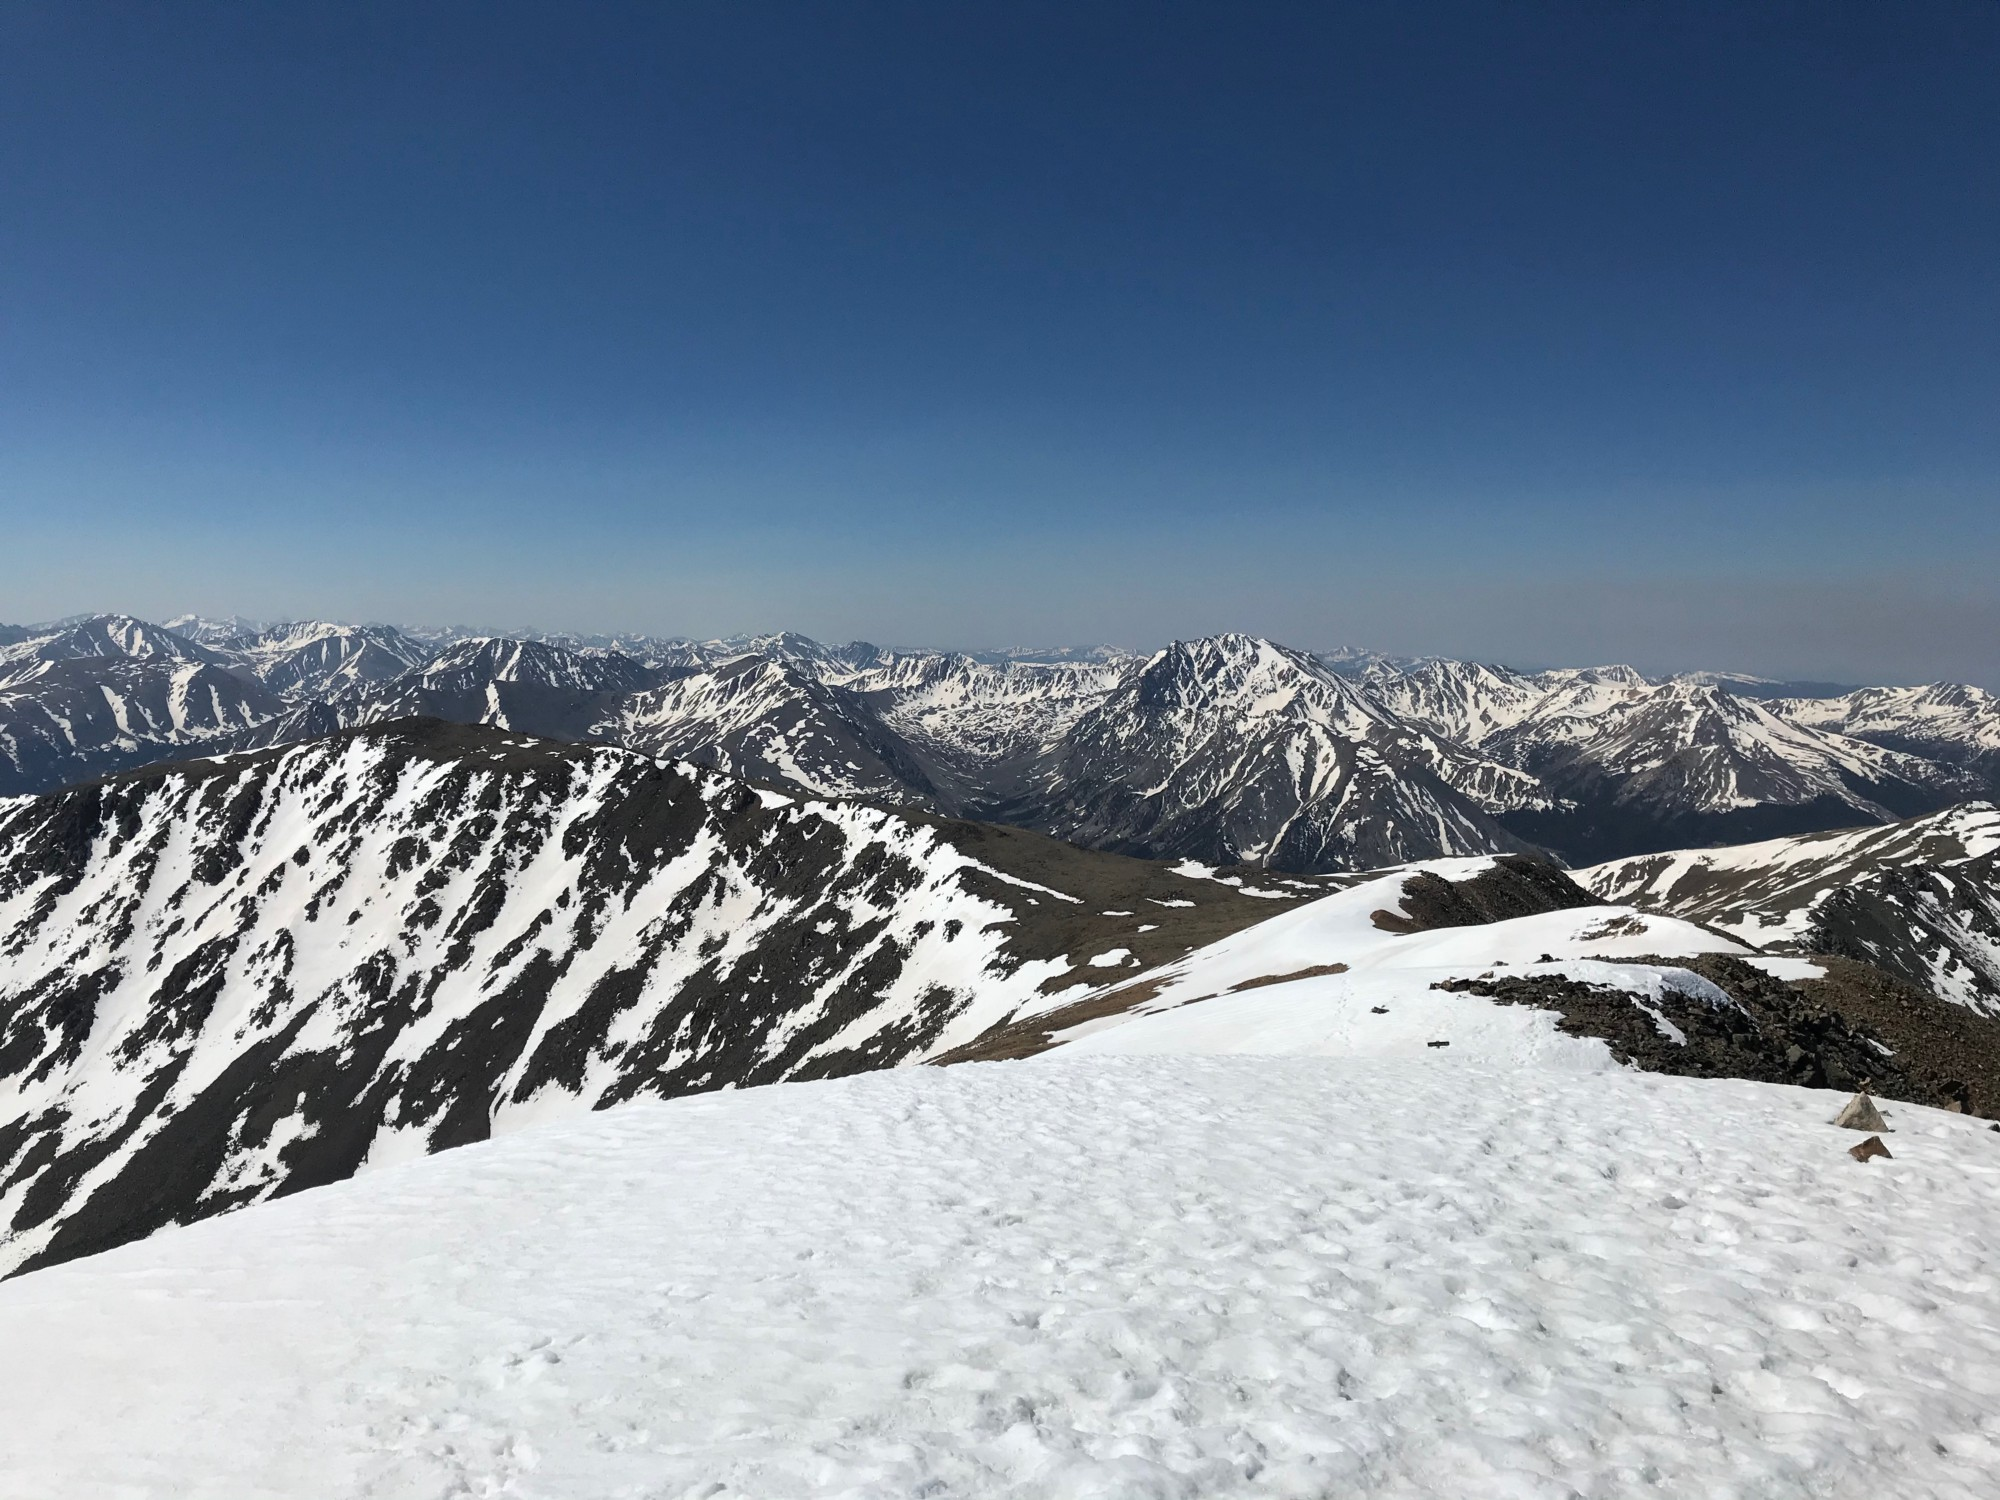 View of snowcapped mountain peaks and blue sky from the top of a mountain.